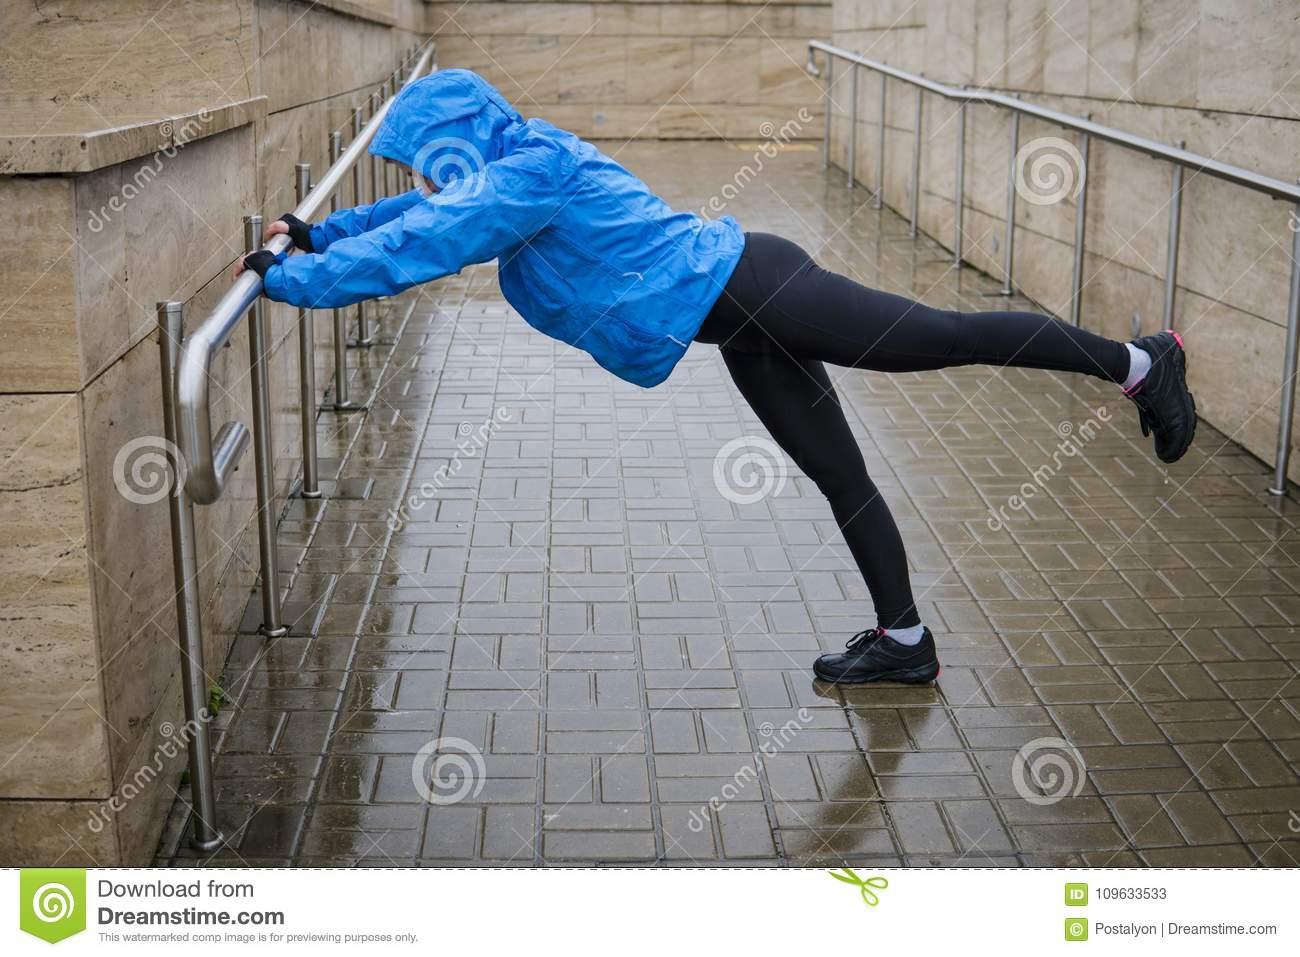 Woman adult doing bodyweight glute and leg exercises on outdoor